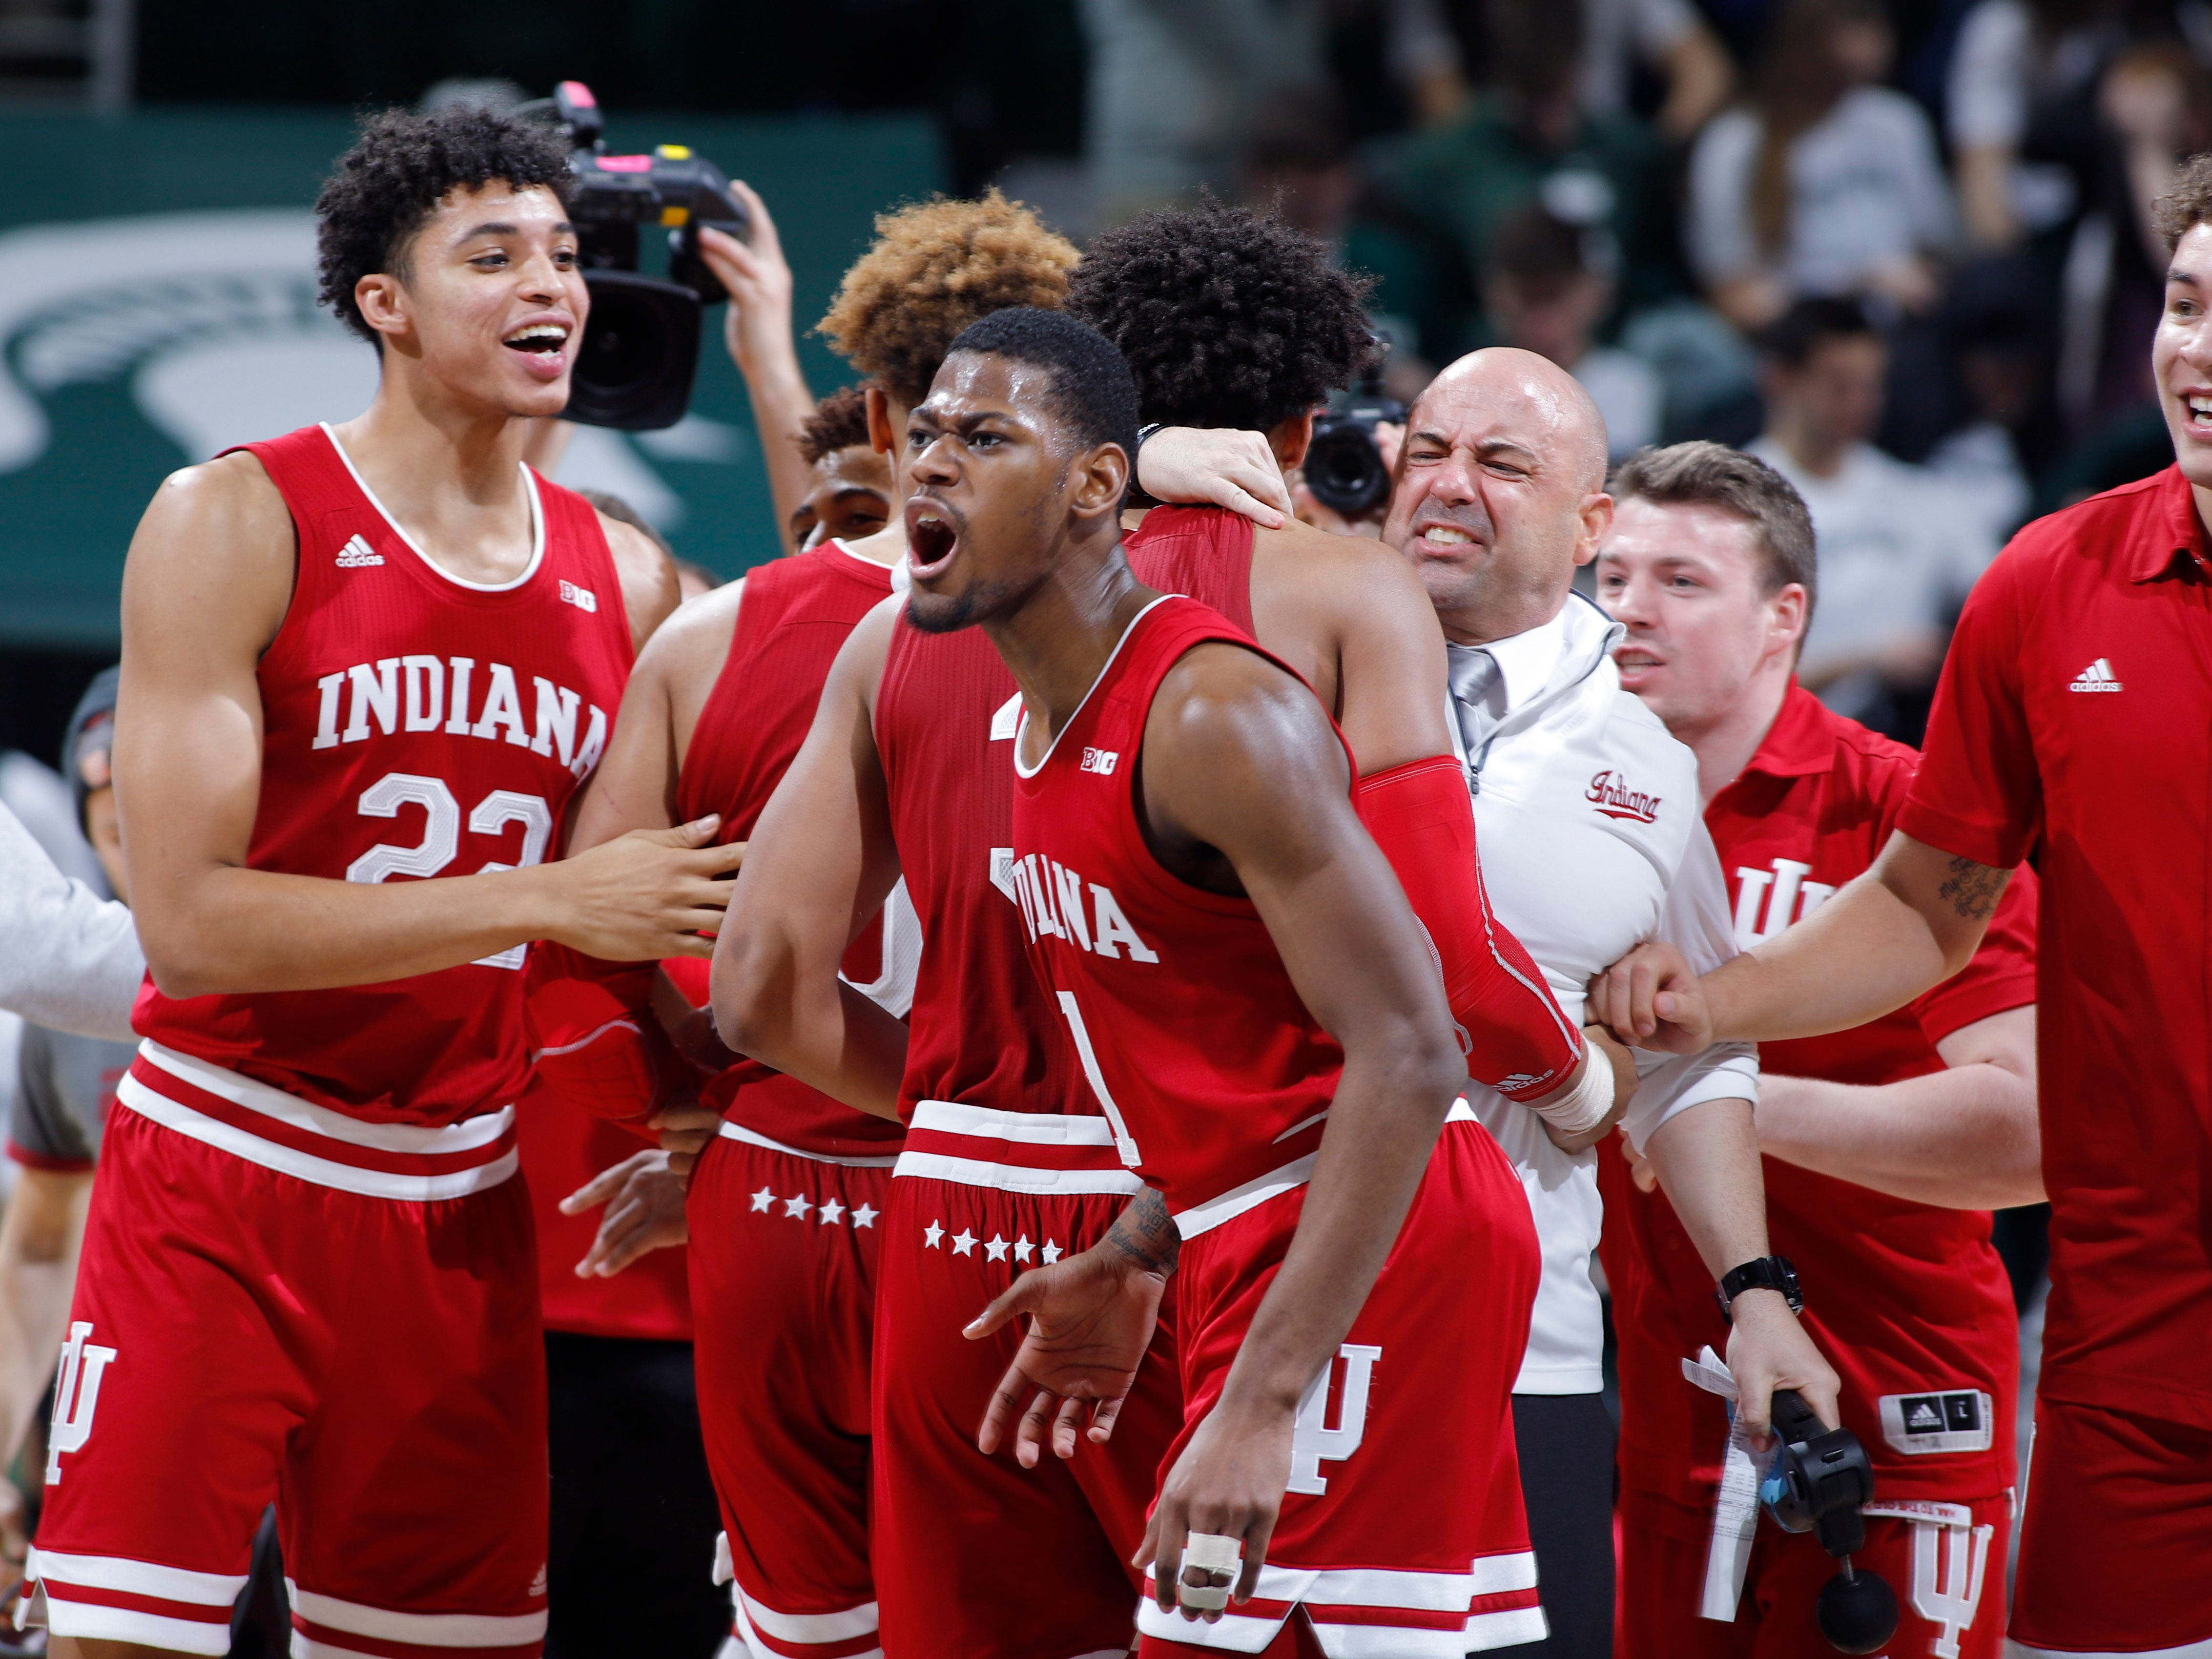 Indiana players and coaches celebrate following a 79-75 overtime win over Michigan State in an NCAA college basketball game, Saturday, Feb. 2, 2019, in East Lansing, Mich.